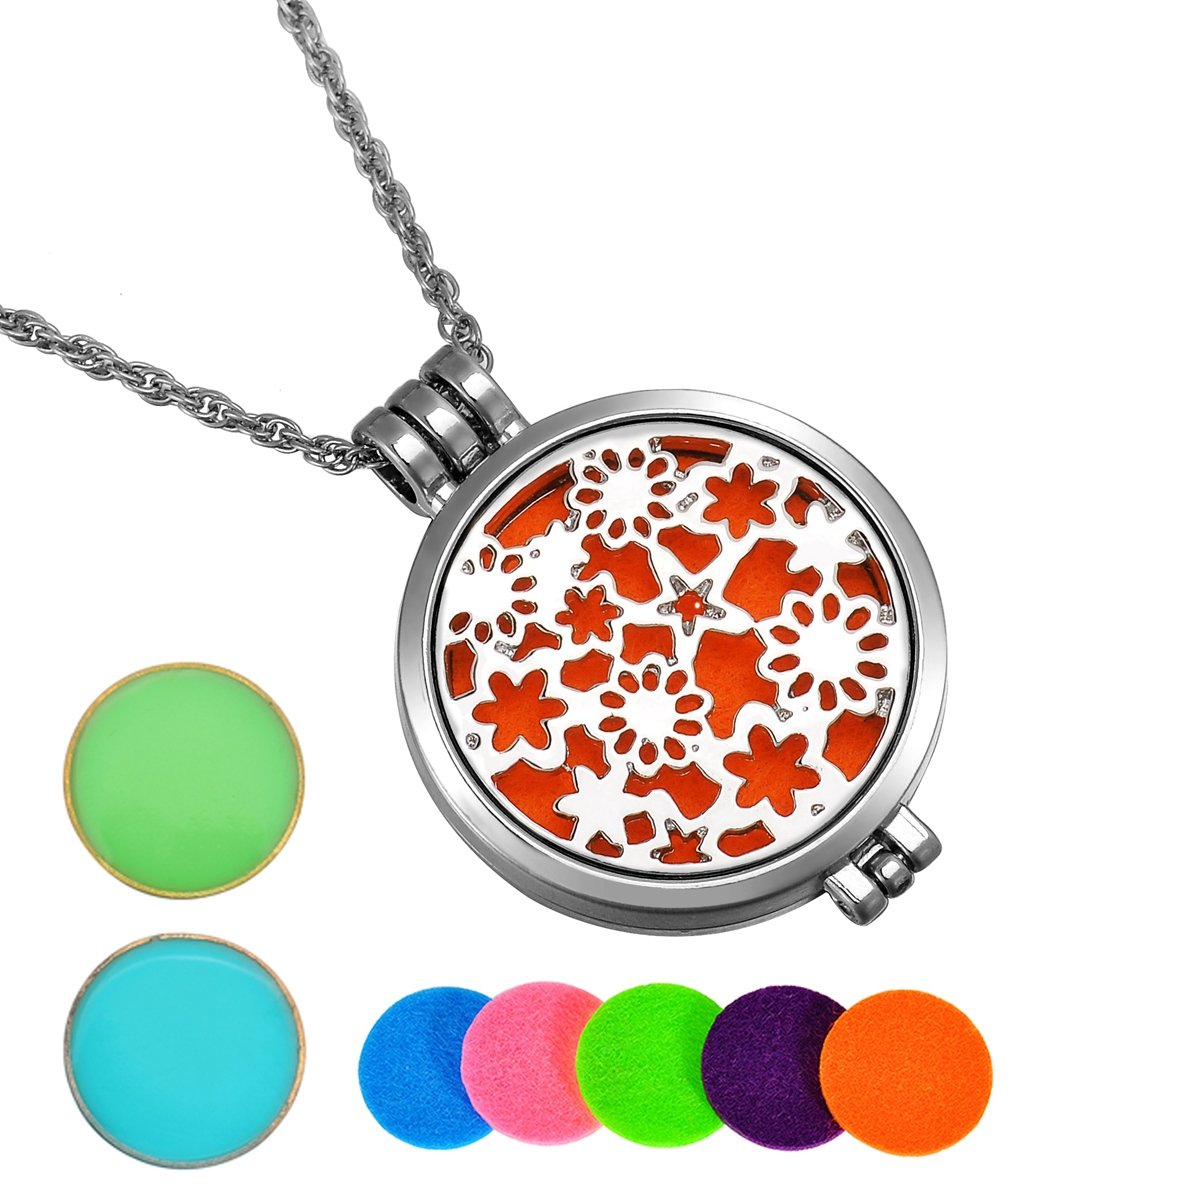 HooAMI Aromatherapy Essential Oil Diffuser Necklace Flower Patch Locket Pendant,5 Colorful Pads+2 Noctilucent Pads TY UPIE17383